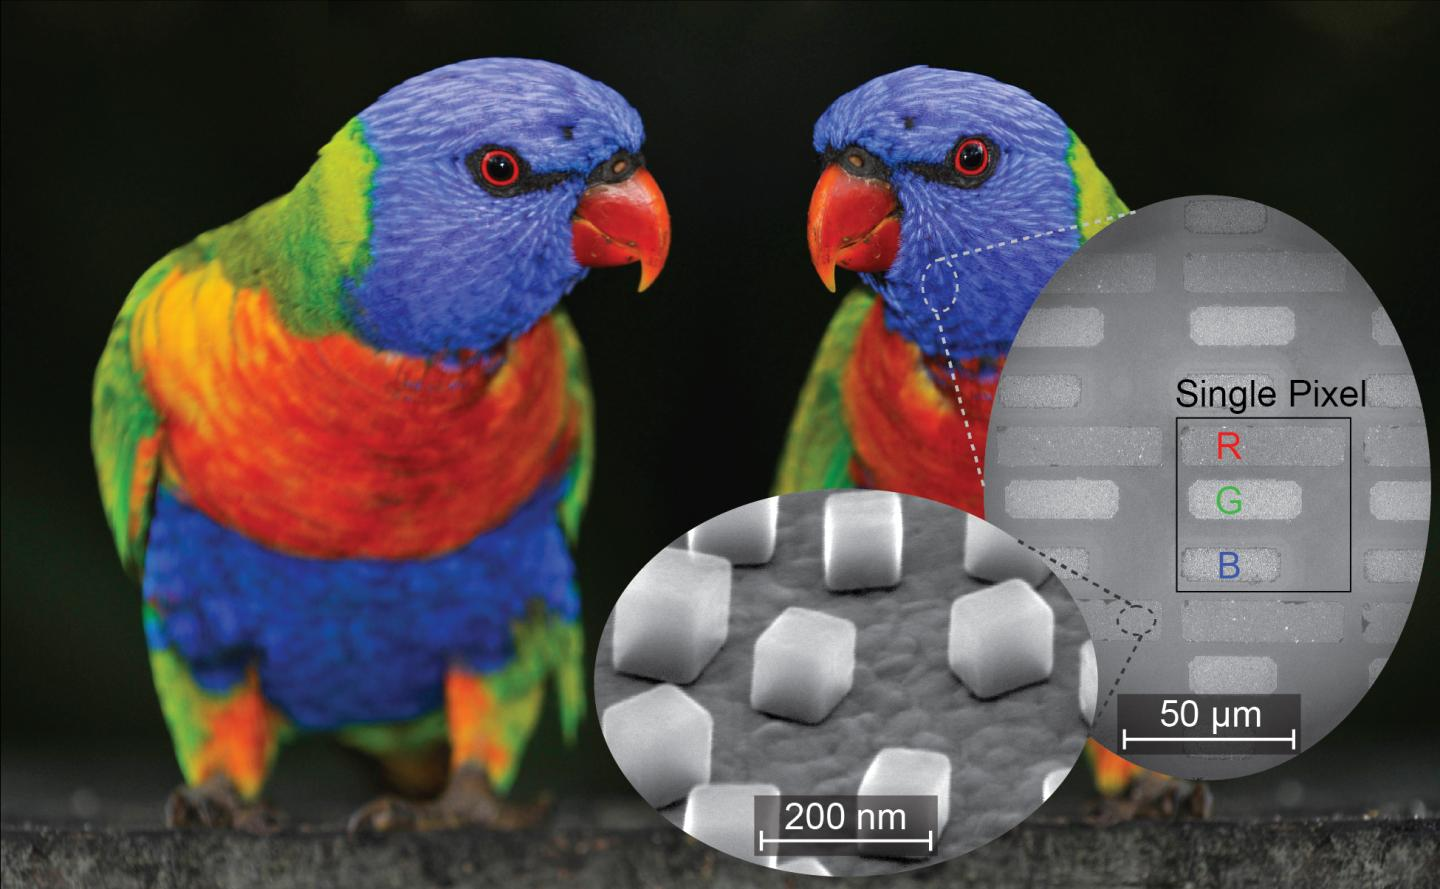 Researchers tested a new technique for printing and imaging in both color and infrared with this image of a parrot